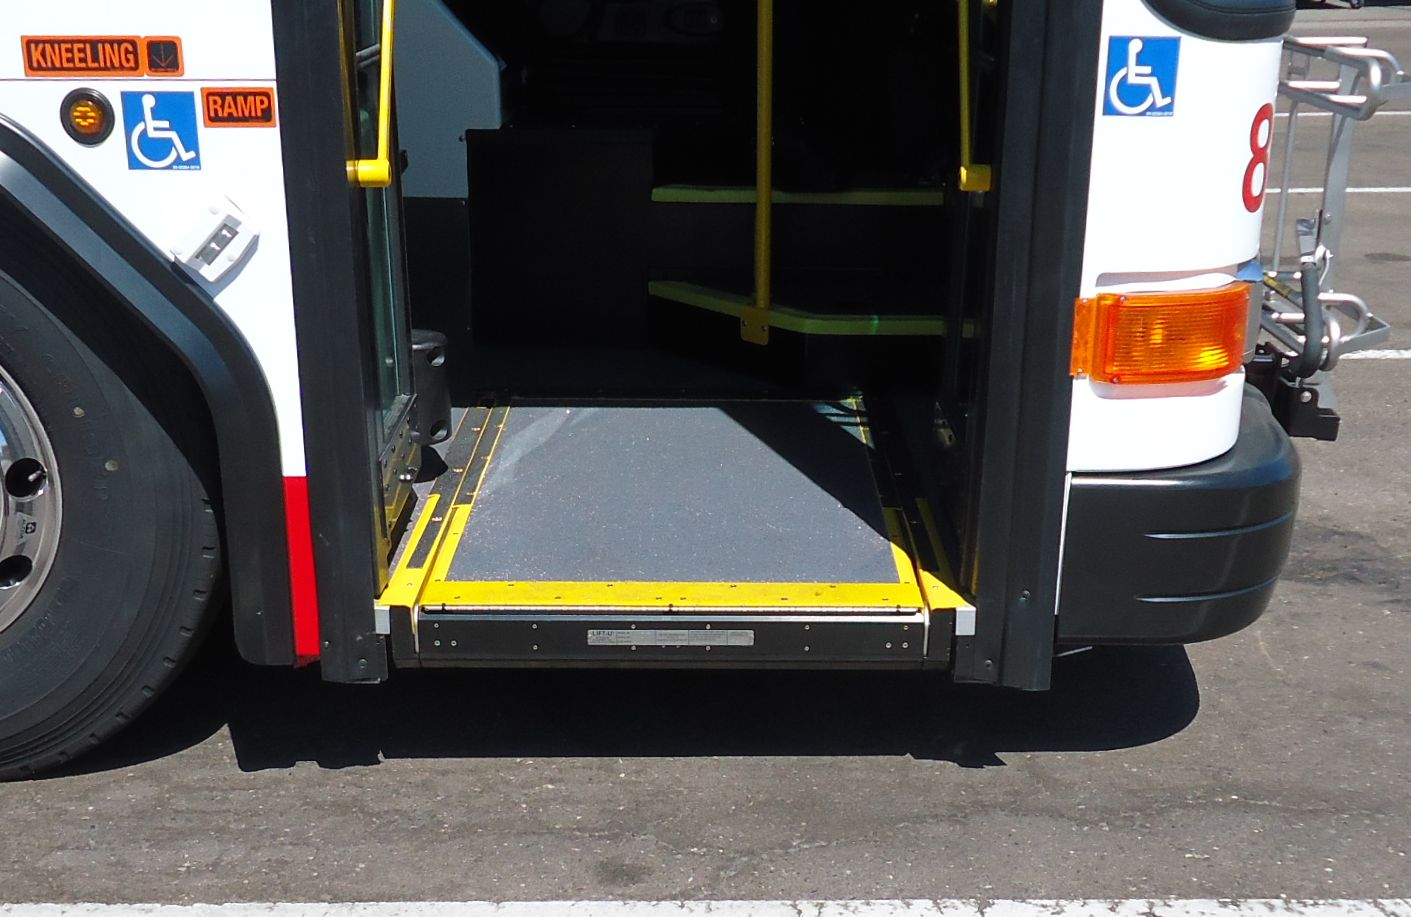 Ramp is stowed into the bus.